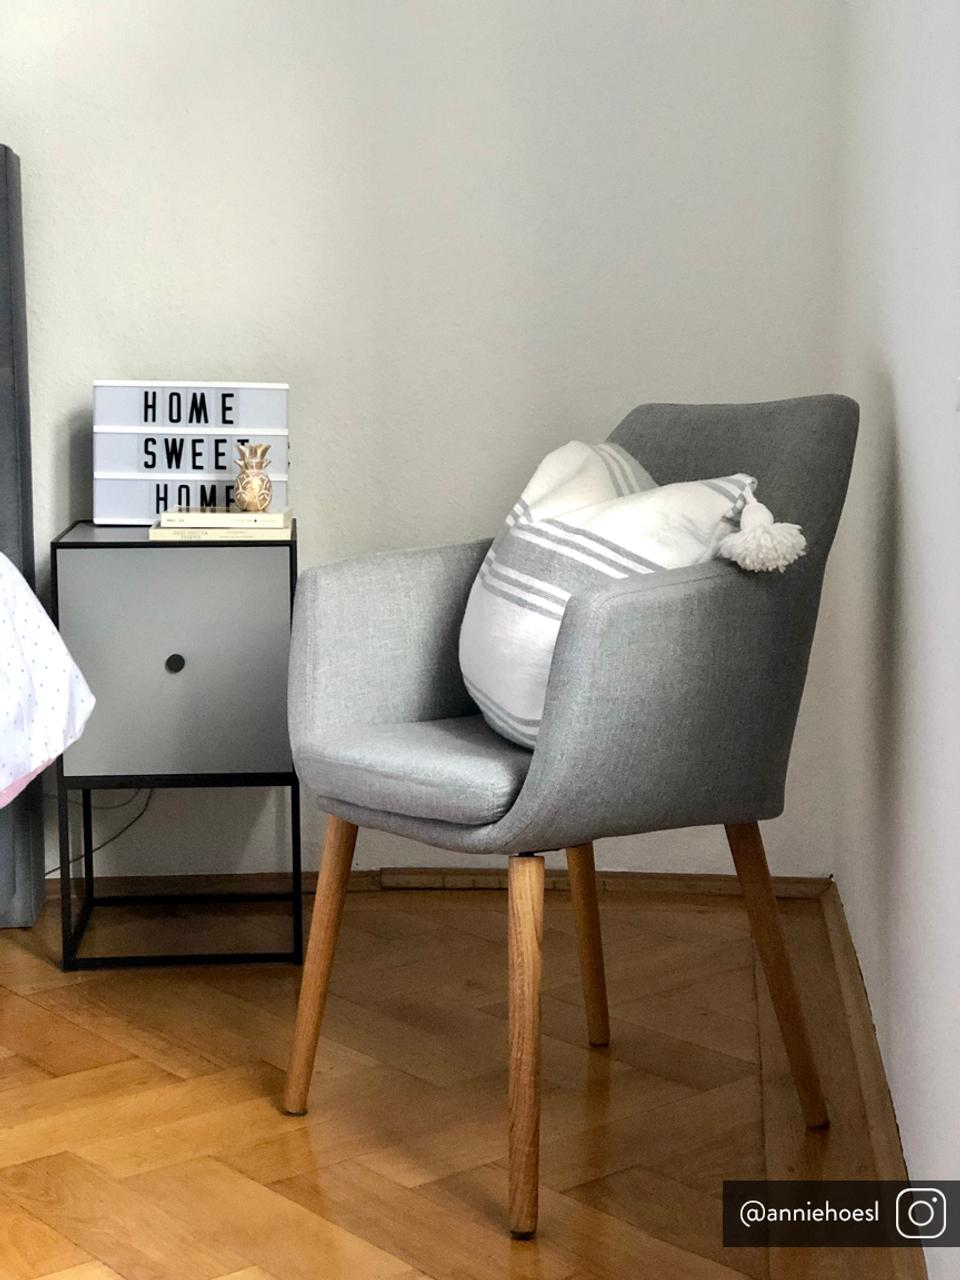 Chaise scandinave Nora, Tissu gris clair, pieds chêne